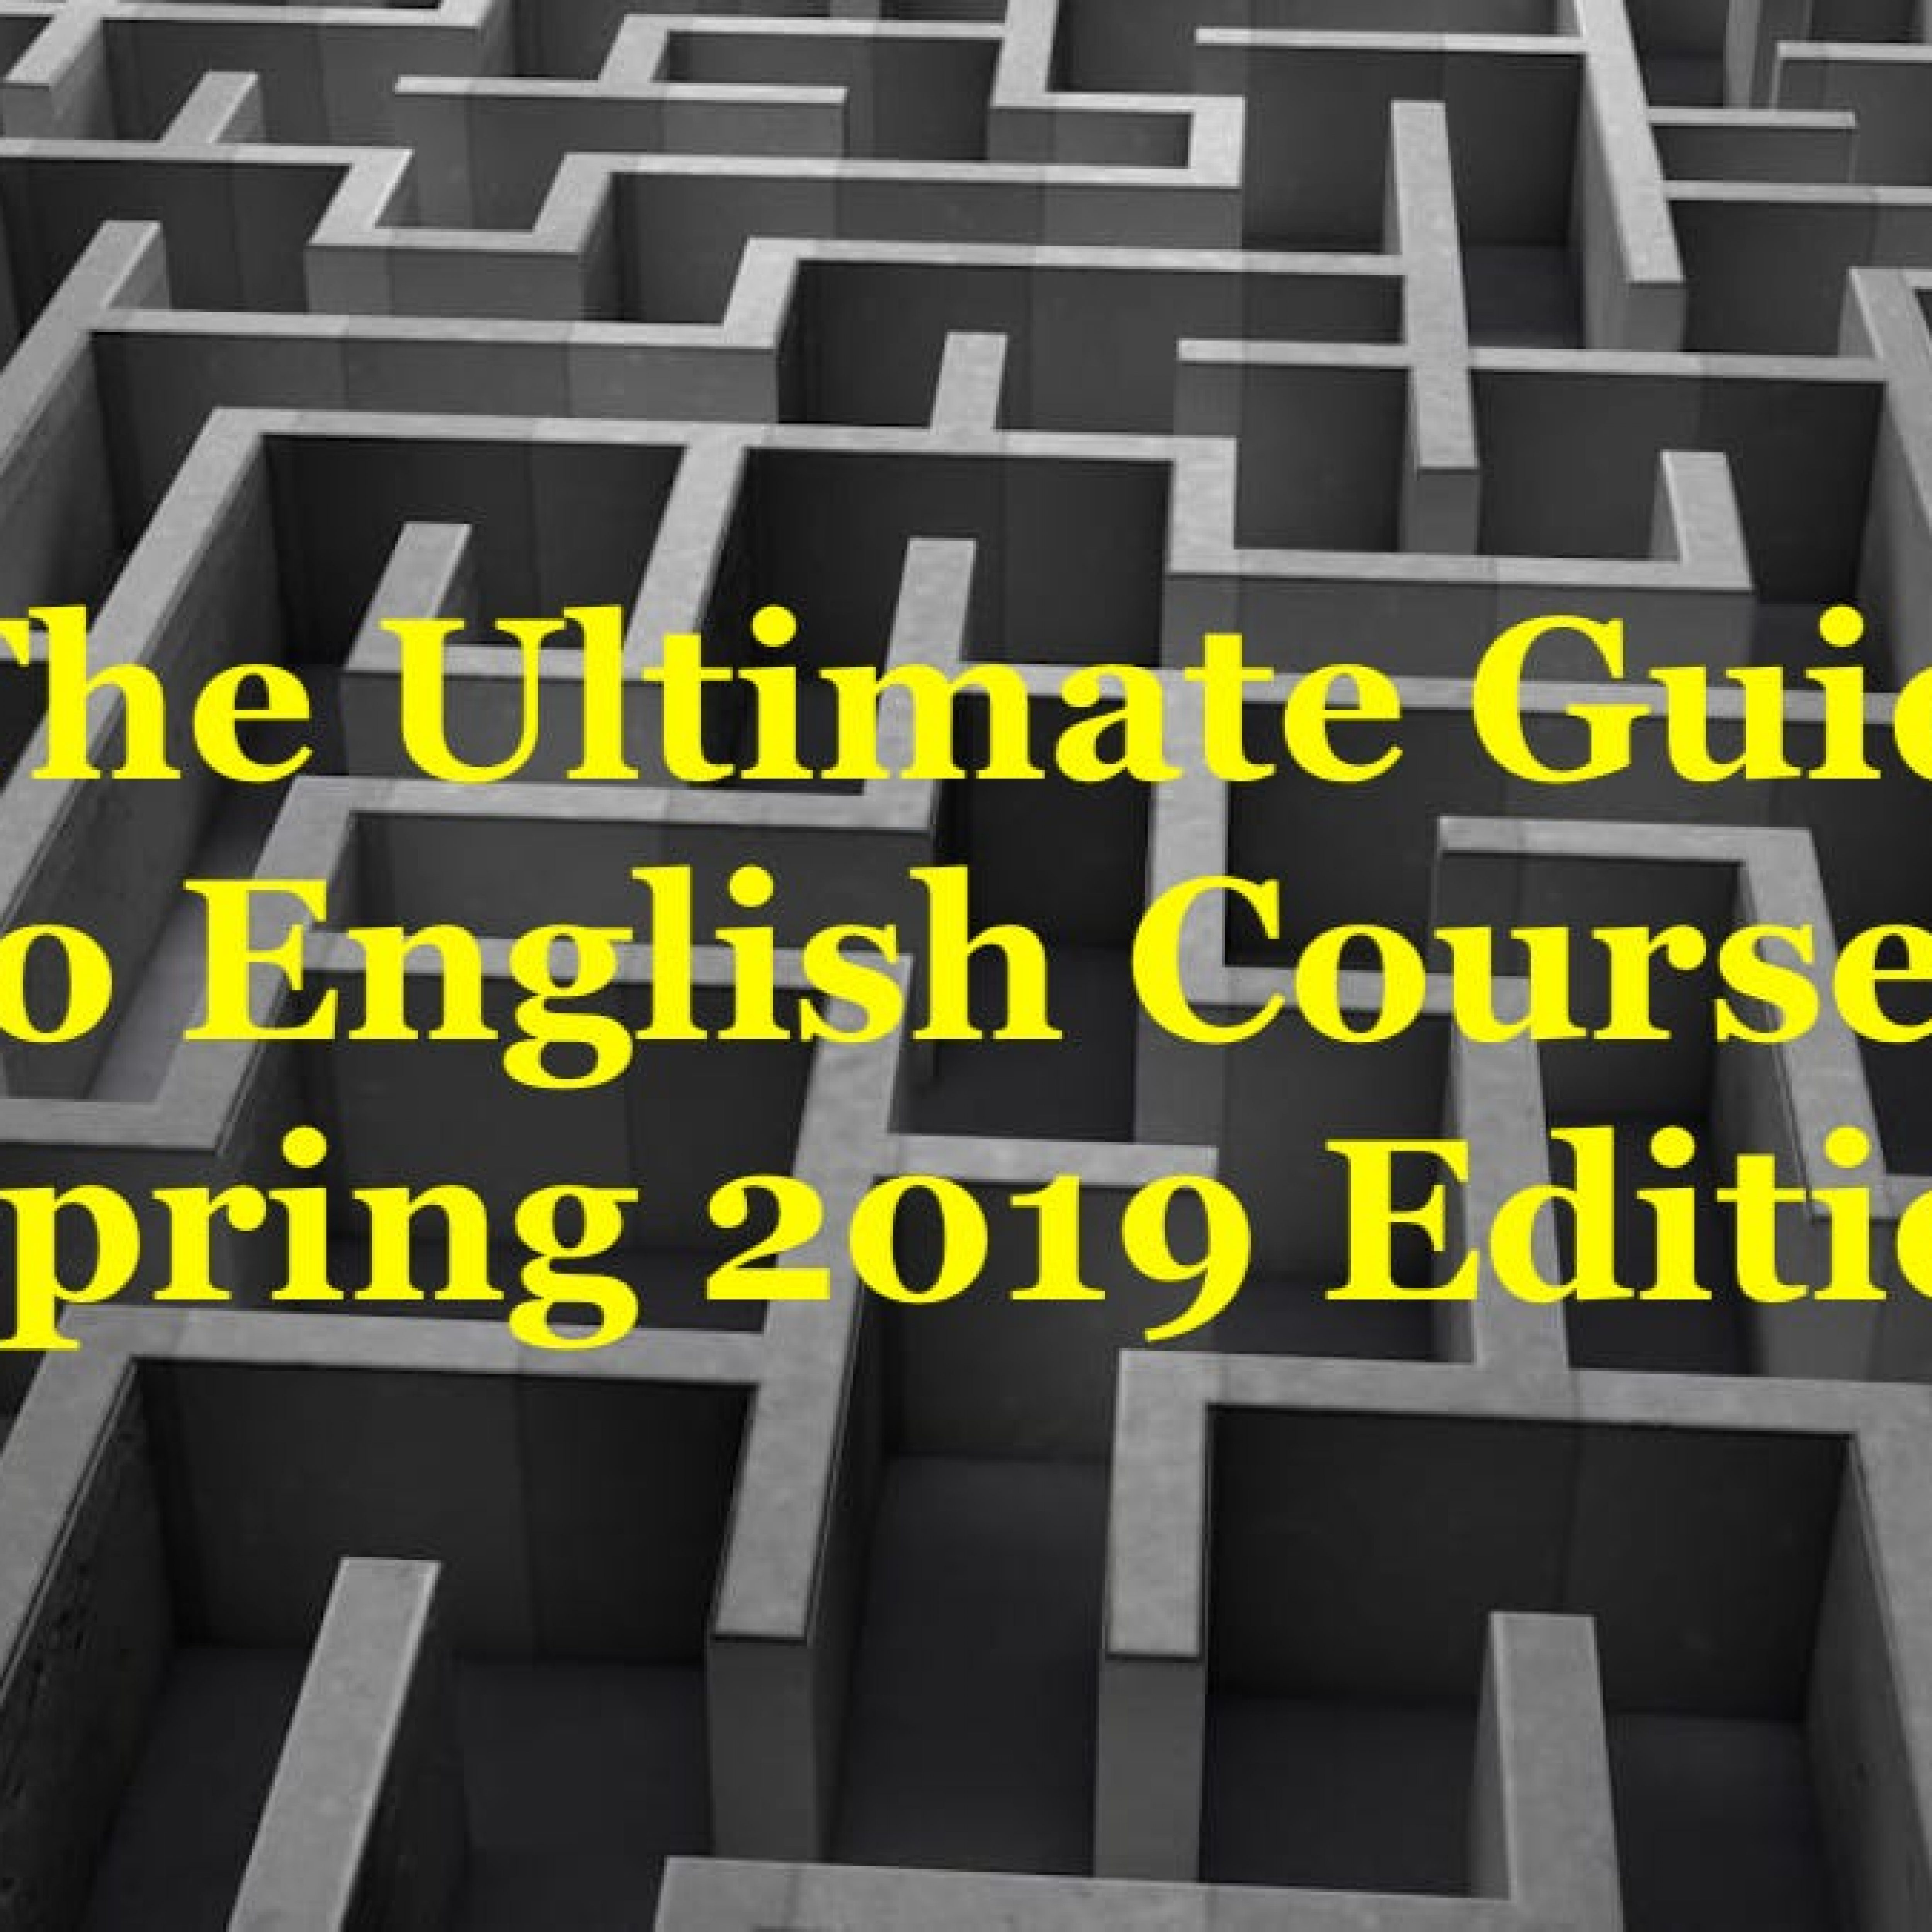 The Ultimate Guide to English Courses: Spring 2019 Edition